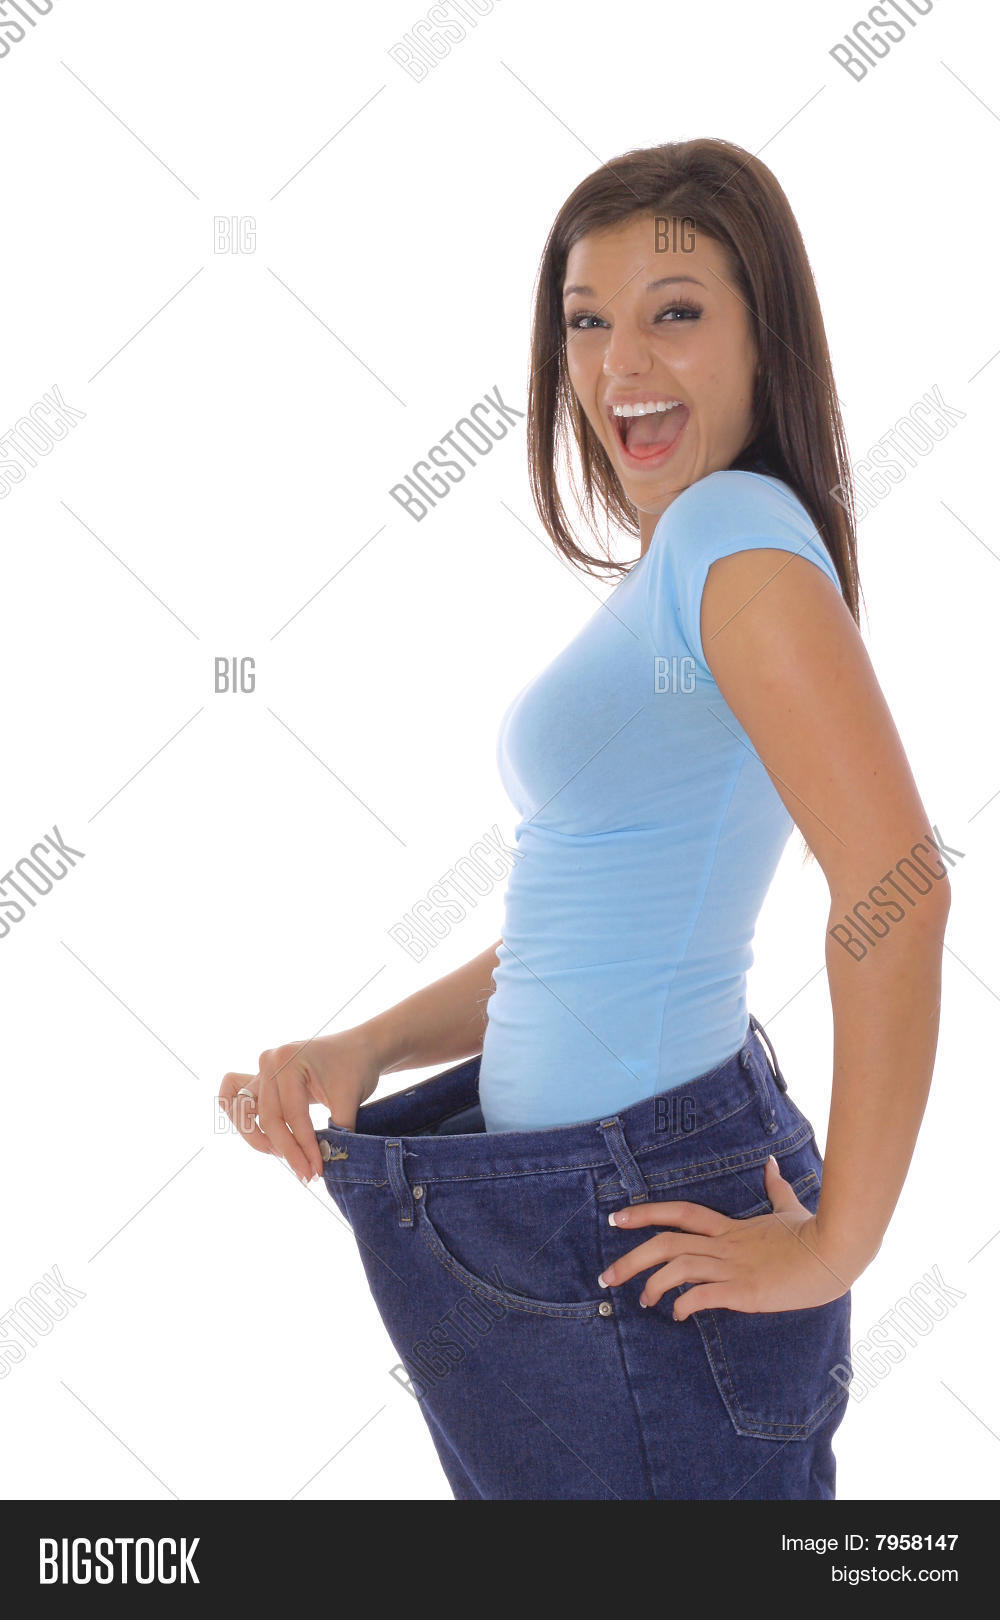 adult,back,background,beautiful,big,body,bra,calories,care,cellulite,diet,dieting,exercise,fat,female,fit,fitness,fresh,girl,gym,gymnastics,health,healthcare,healthy,holding,isolated,jeans,large,lifestyle,loose,lose,lose weight,losing,losing weight,loss,lost,nutrition,pants,people,person,pounds,size,skinny,slim,stomach,success,successful,waist,weight,weight-loss,weightloss,weight loss,weight loss woman,white,woman,young